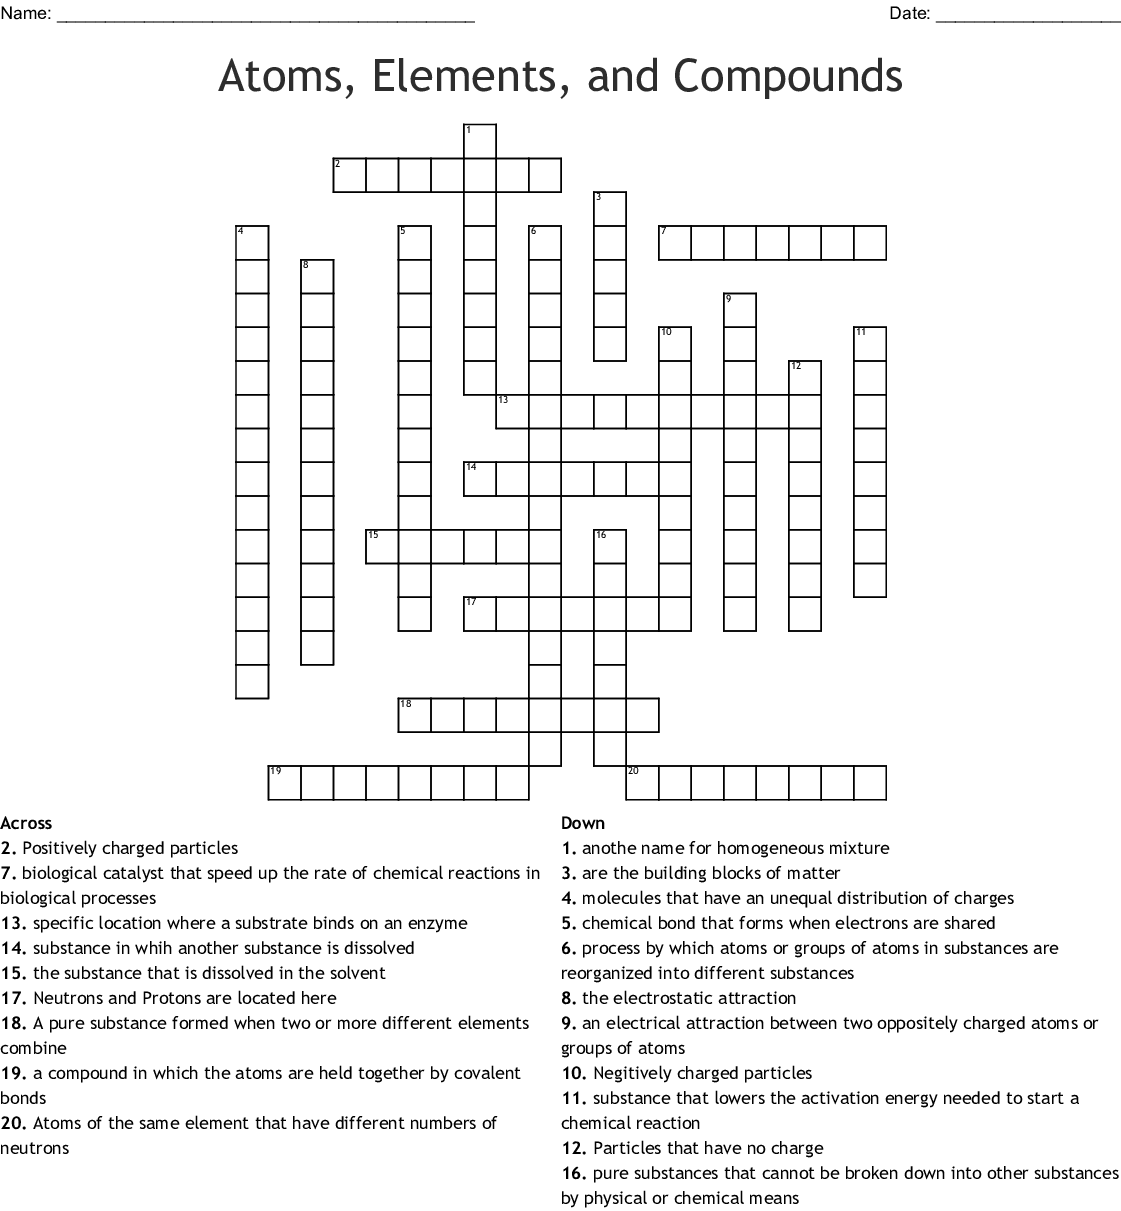 Atoms, Elements, and Compounds Crossword - WordMint